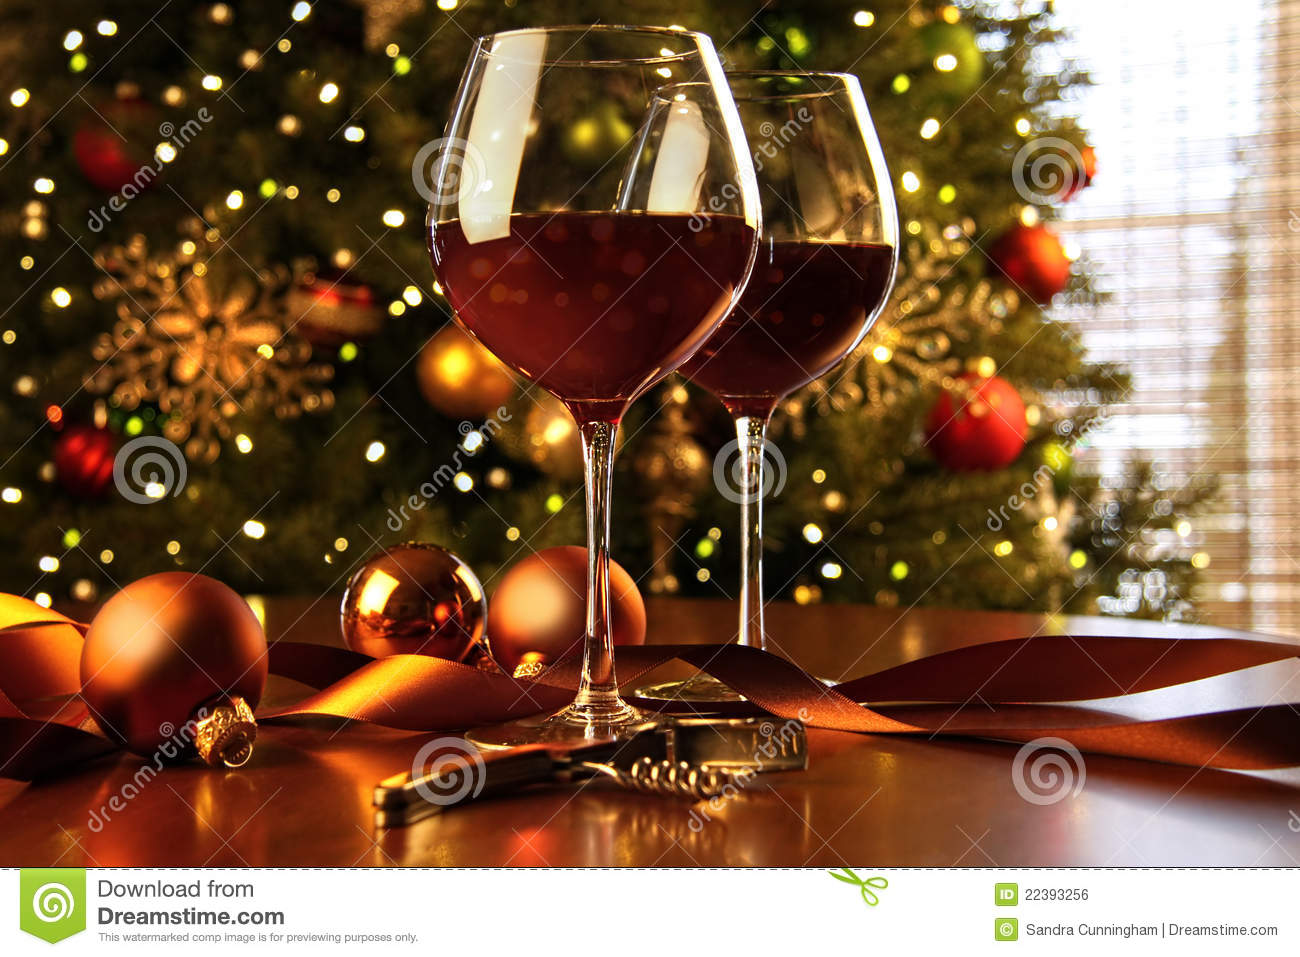 Red wine on table with Christmas tree